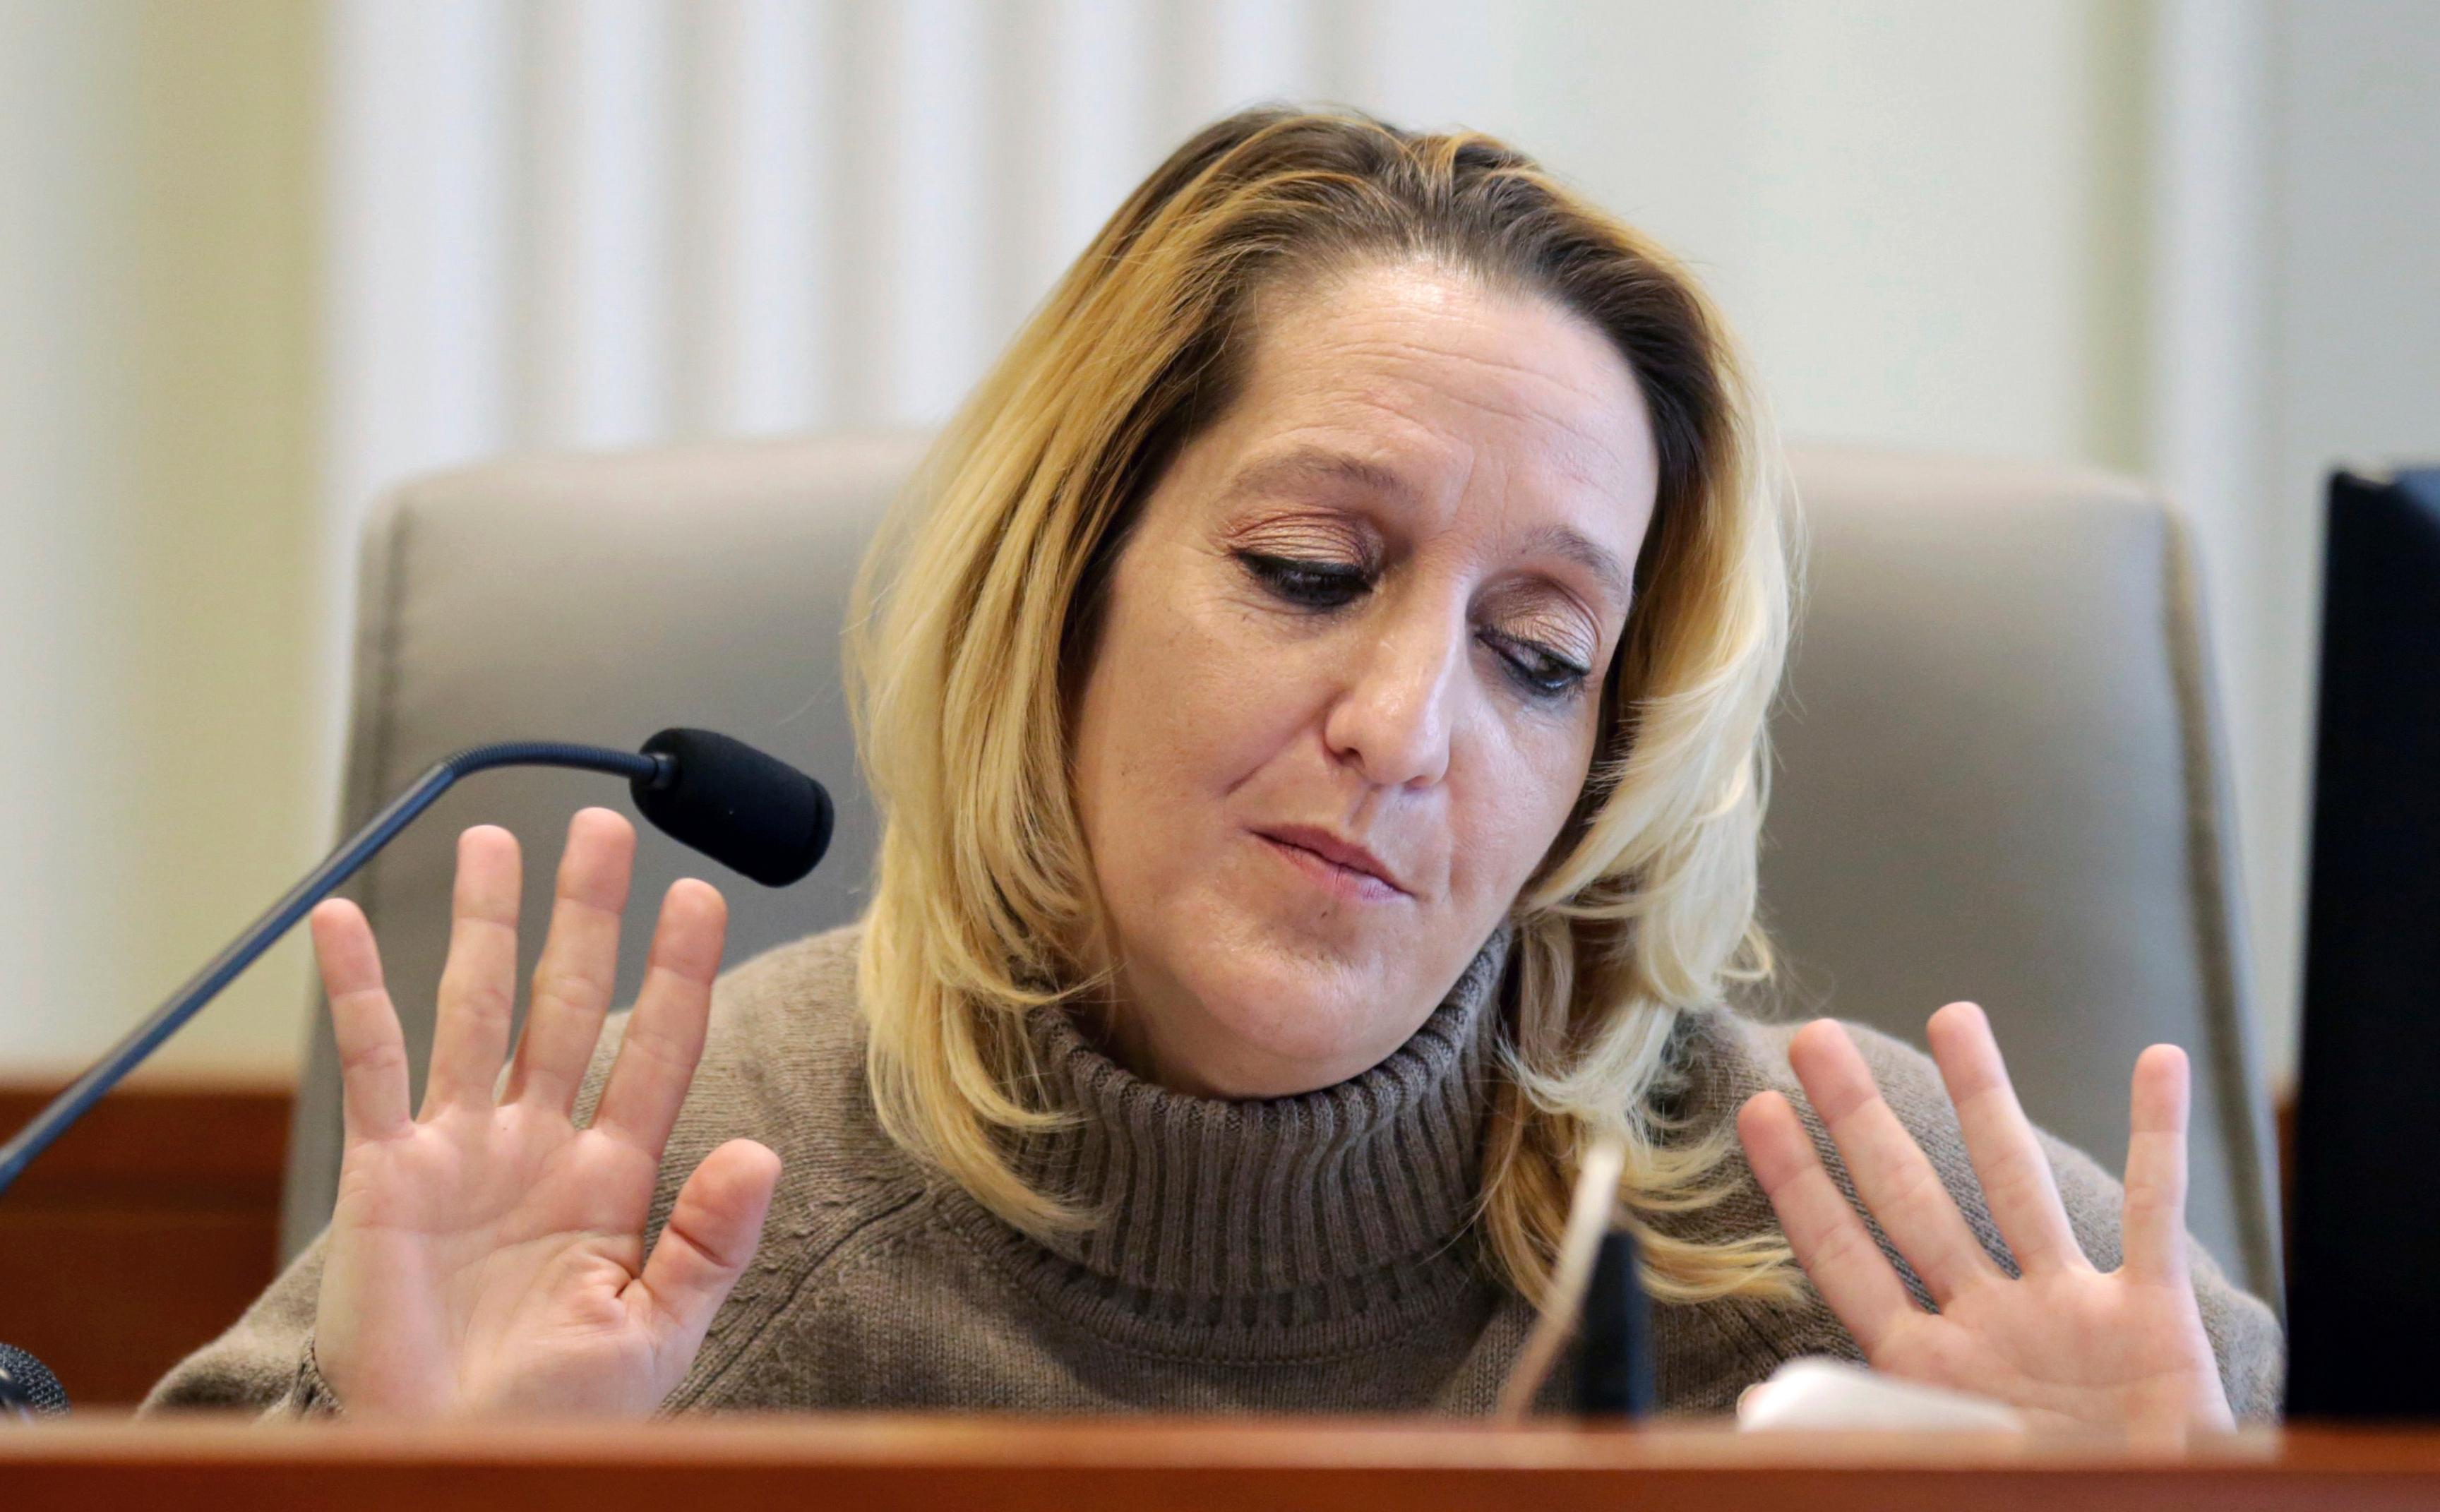 Lisa Britt throws up her hands as she answers a question by by attorney Marc Elias during the public evidentiary hearing on the 9th Congressional District investigation at the North Carolina State Bar Monday, Feb. 18, 2019, in Raleigh, N.C. (Juli Leonard/The News & Observer via AP, Pool)